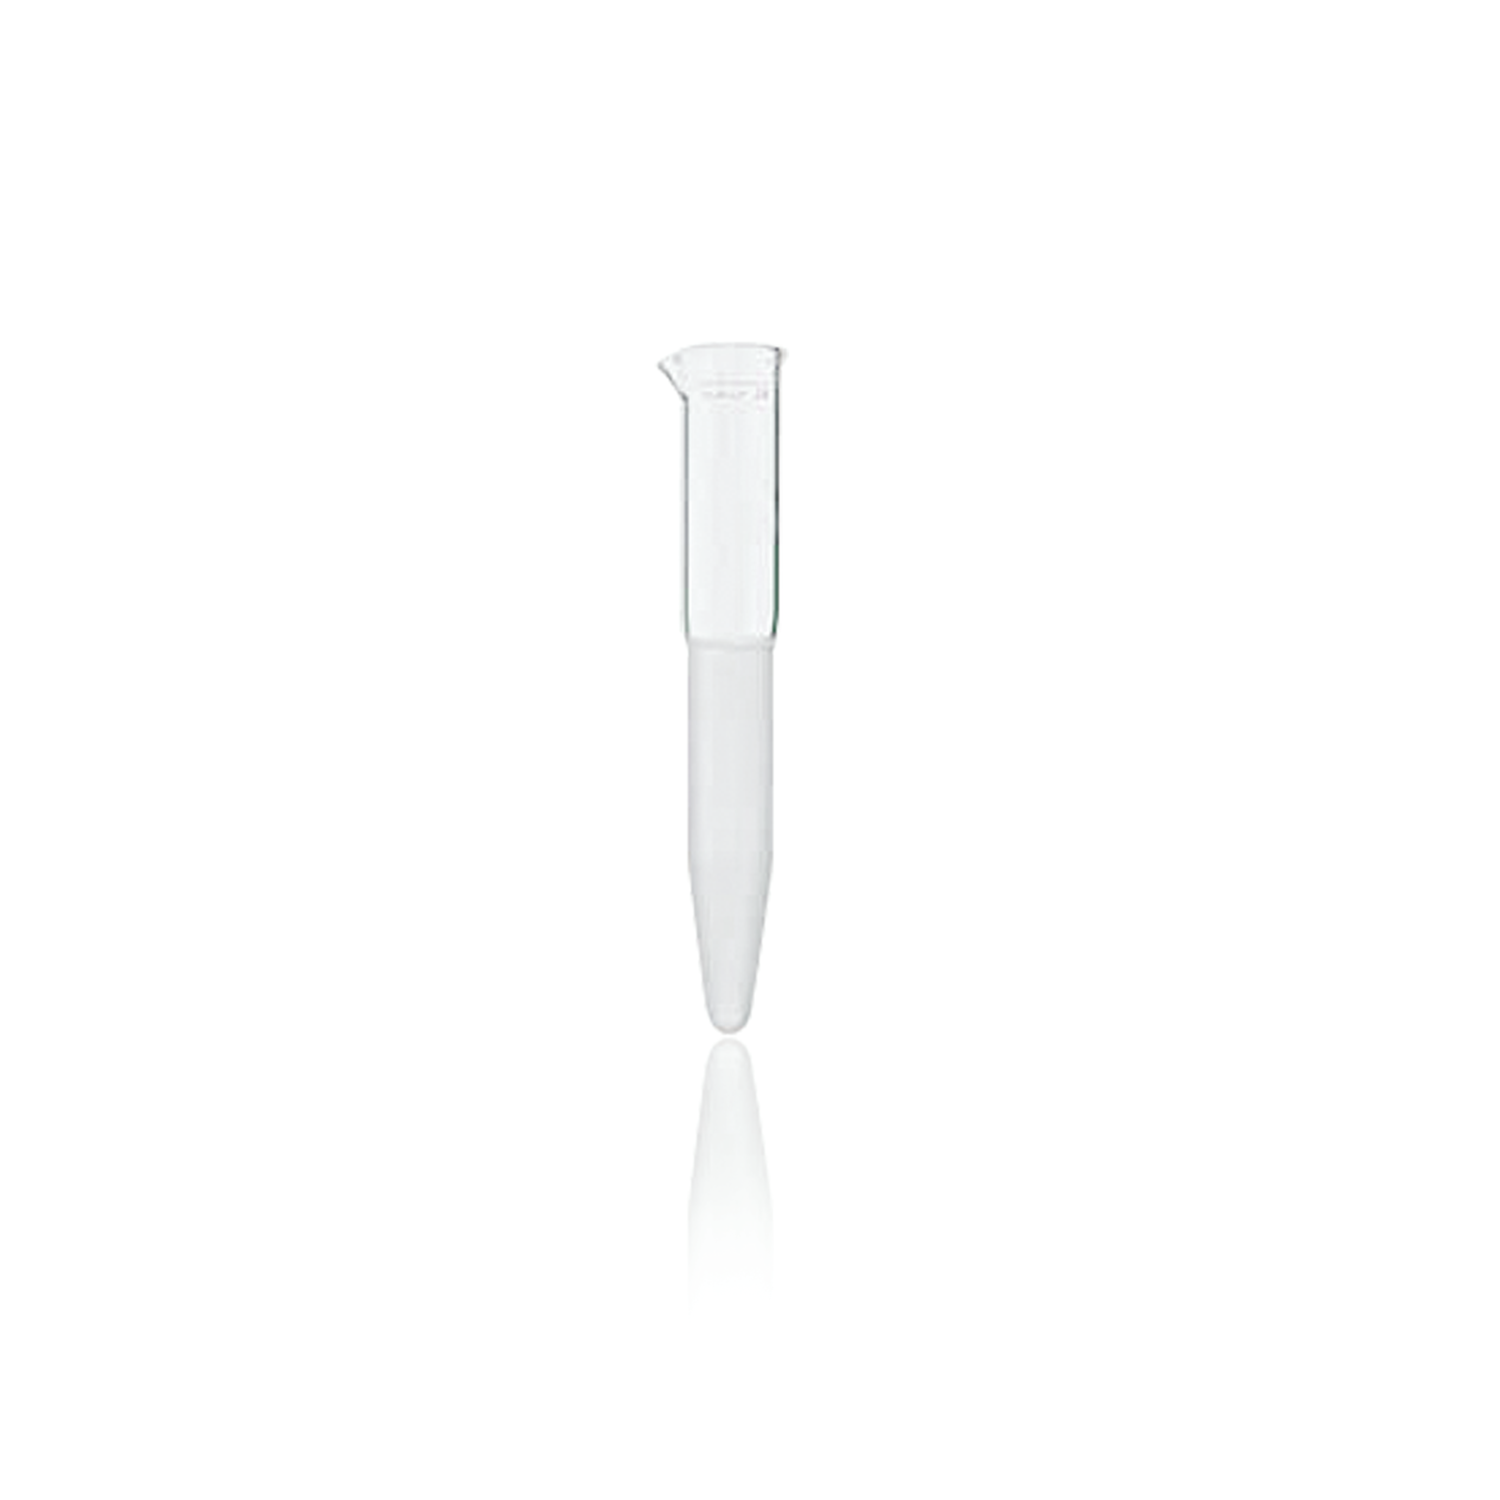 Replacement Tube (Motar) for KIMBLE® KONTES® DUALL® Tissue Grinder, Size 22